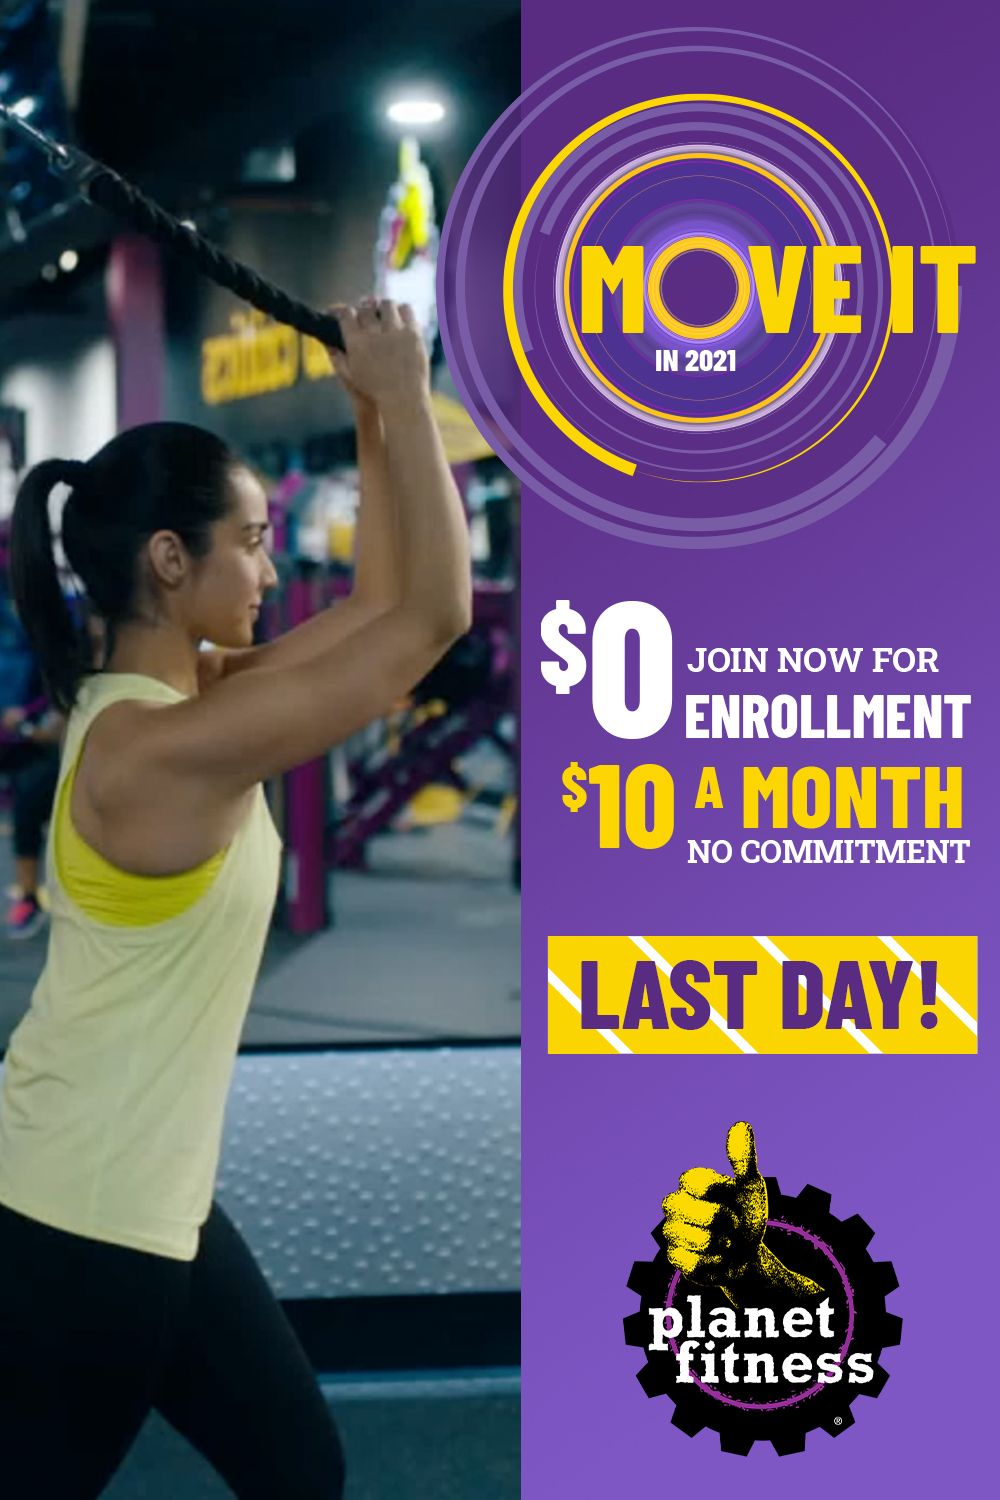 Join Now For 0 Enrollment Ends 2 11 In 2021 Planet Fitness Workout Planet Fitness Gym Gyms Near Me